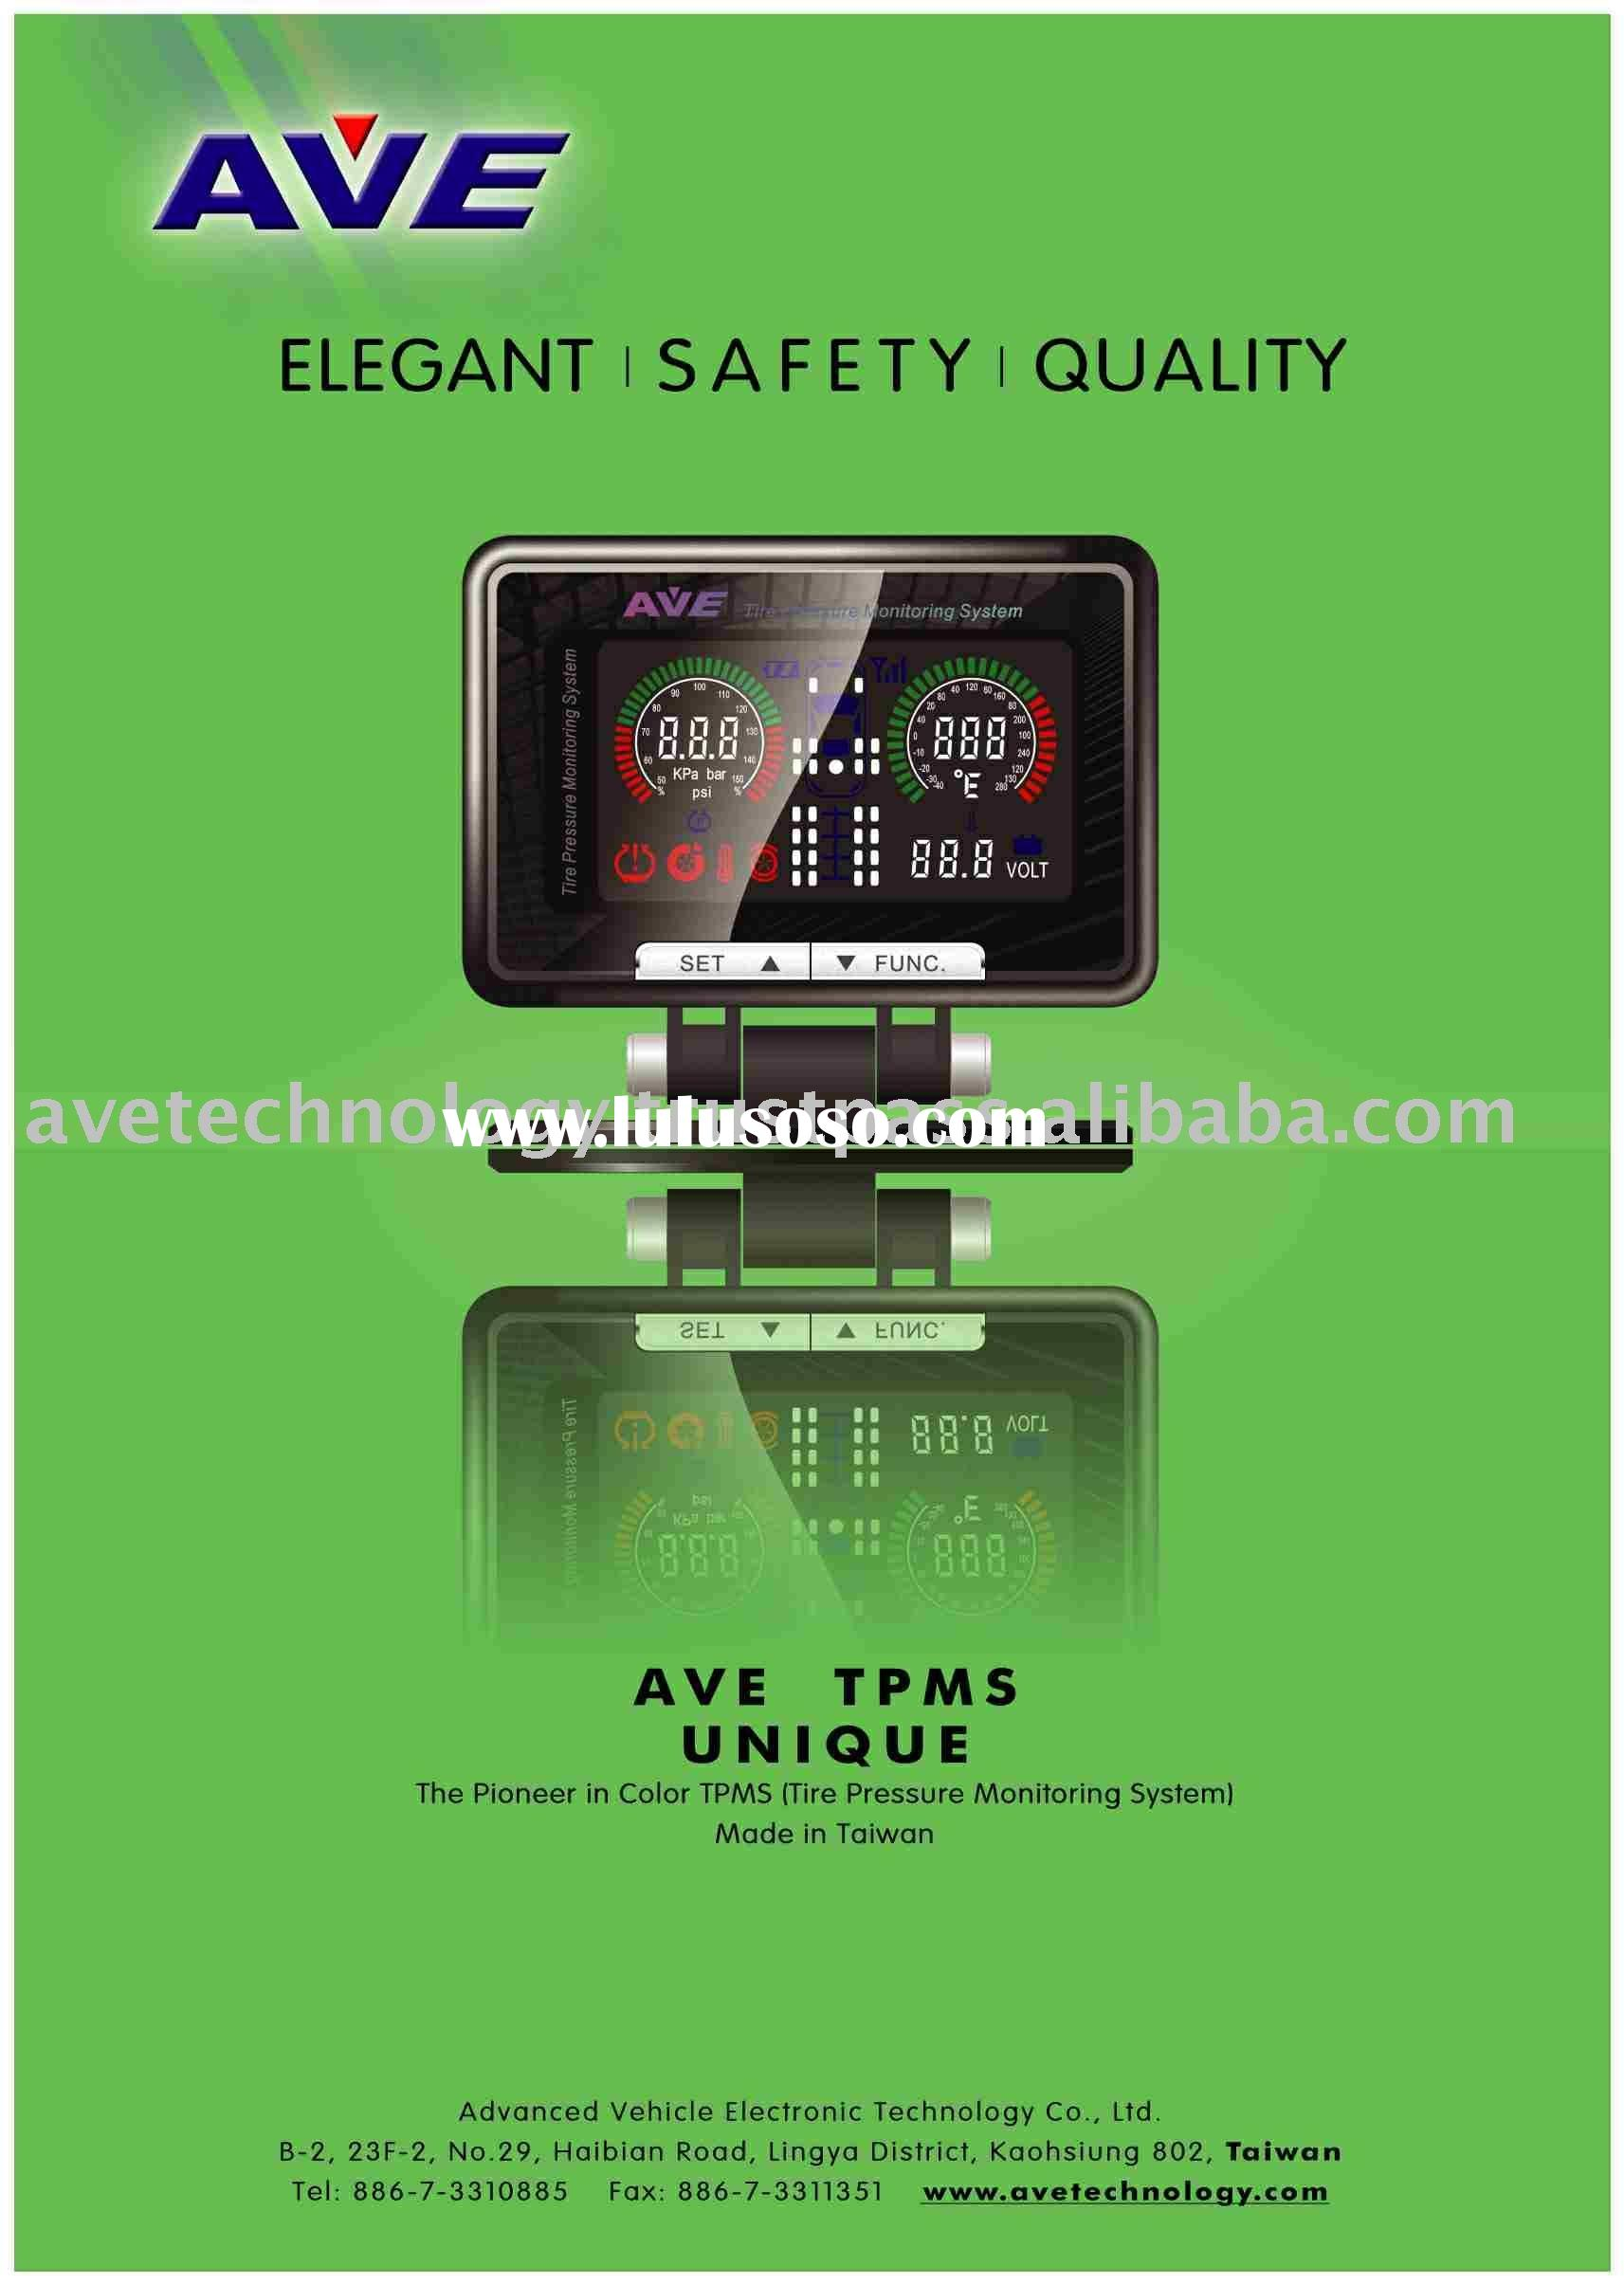 AVE Color LCD TPMS + Auto Electronic FUEL SAVER 15~25% on gasoline,10~20% on truck diesel fuel Tire